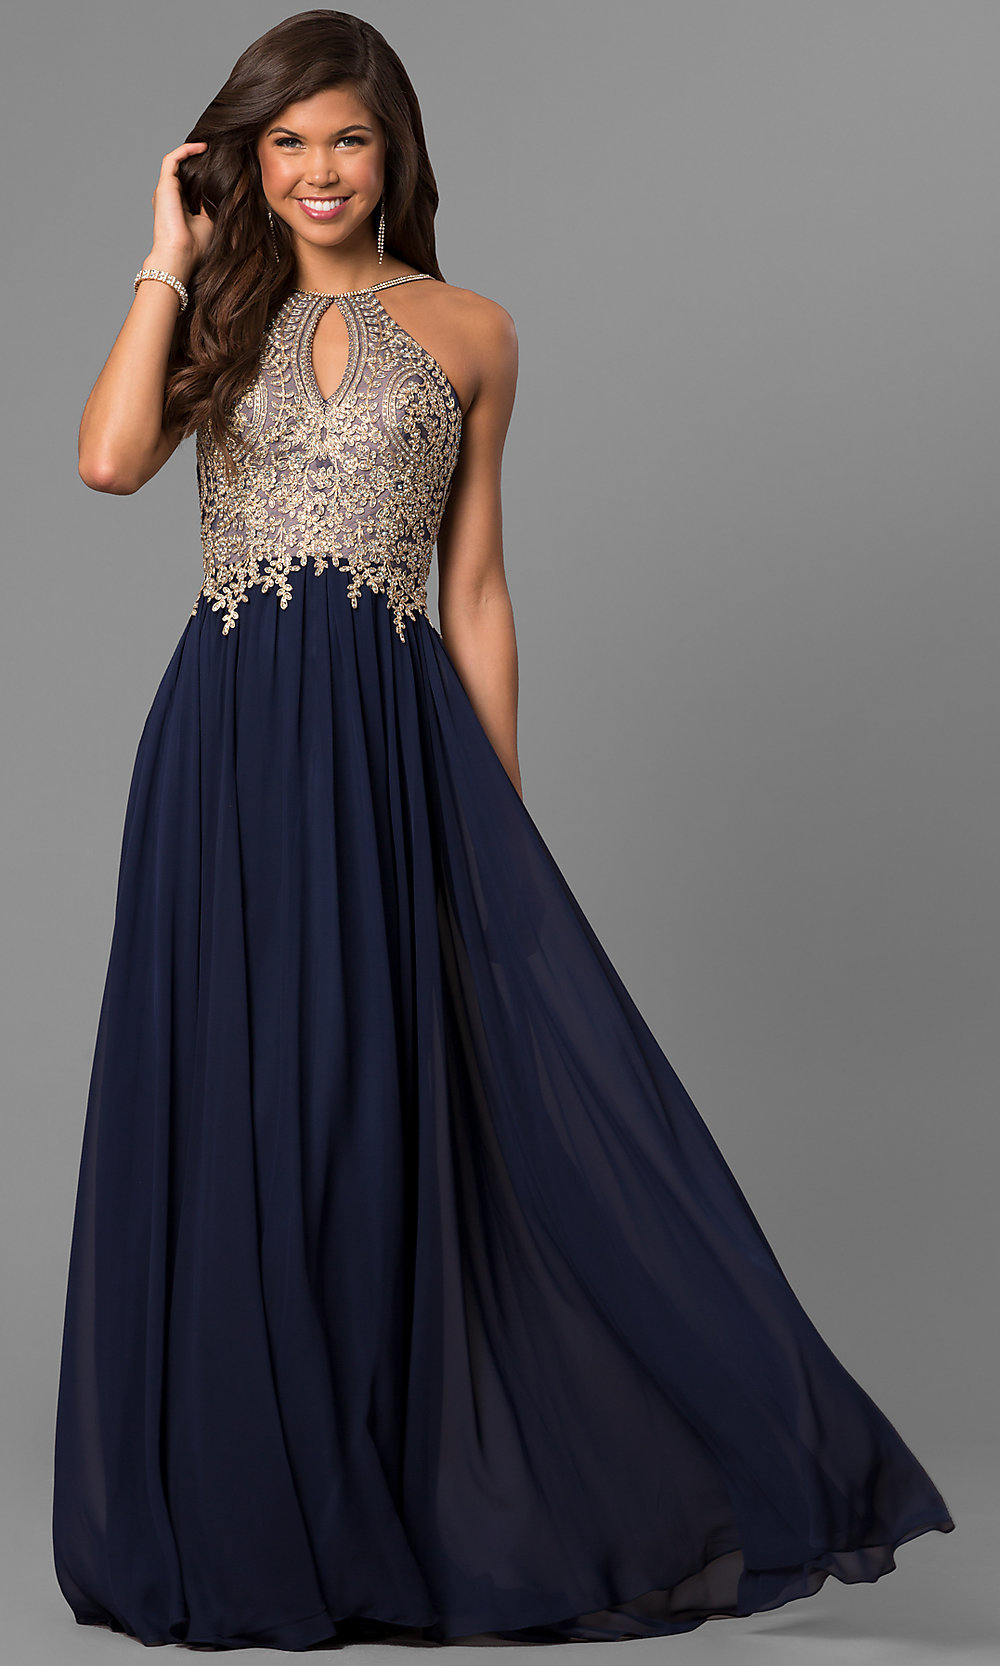 Long Prom Dress, Short Prom Dress, Prom Gowns